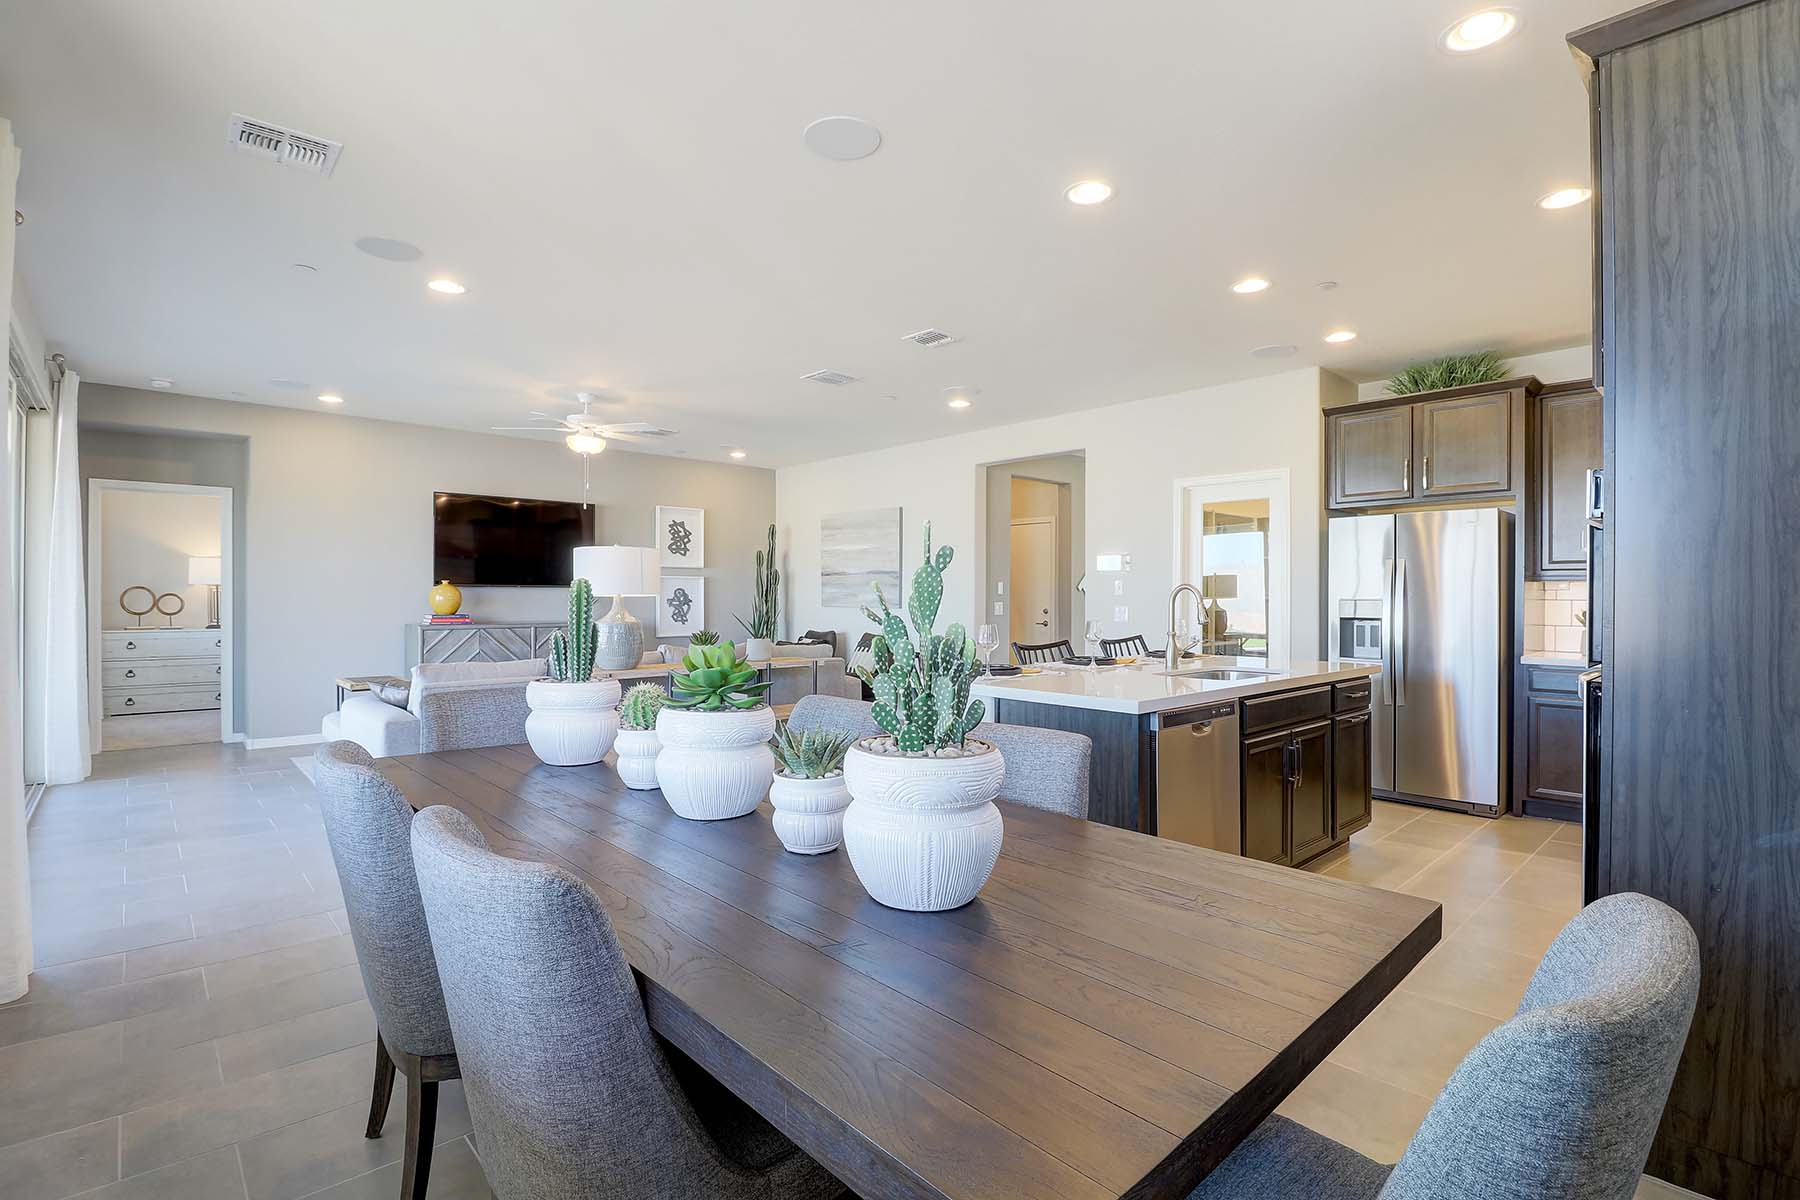 Willowleaf Plan Dining at Brookside at Arroyo Seco in Buckeye Arizona by Mattamy Homes